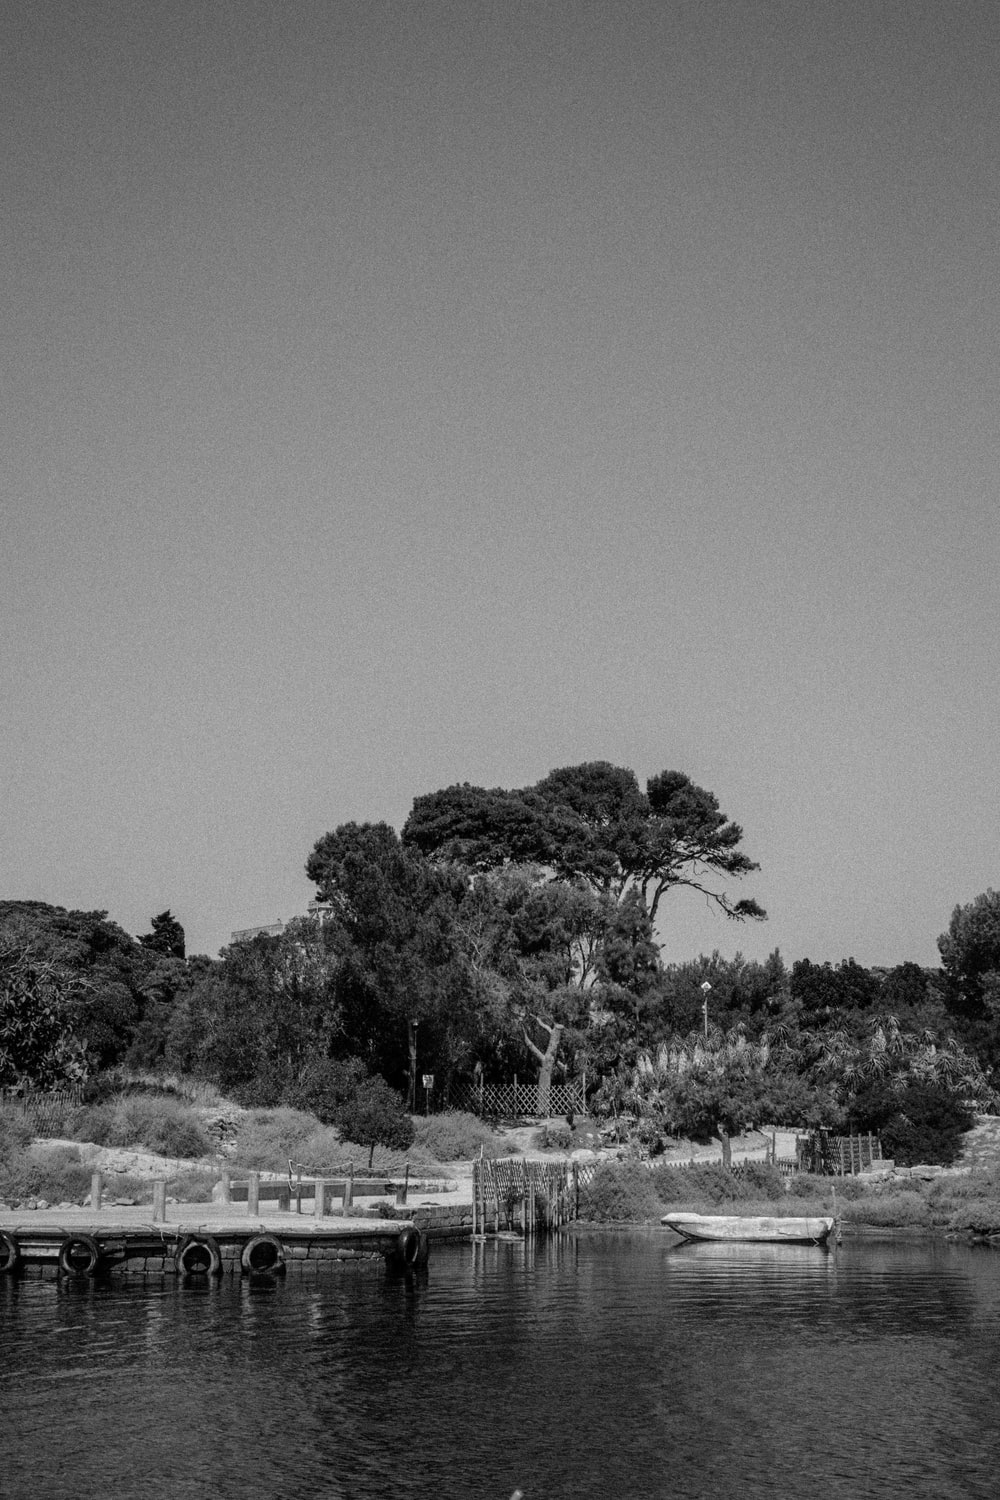 grayscale photography of trees near body of ater